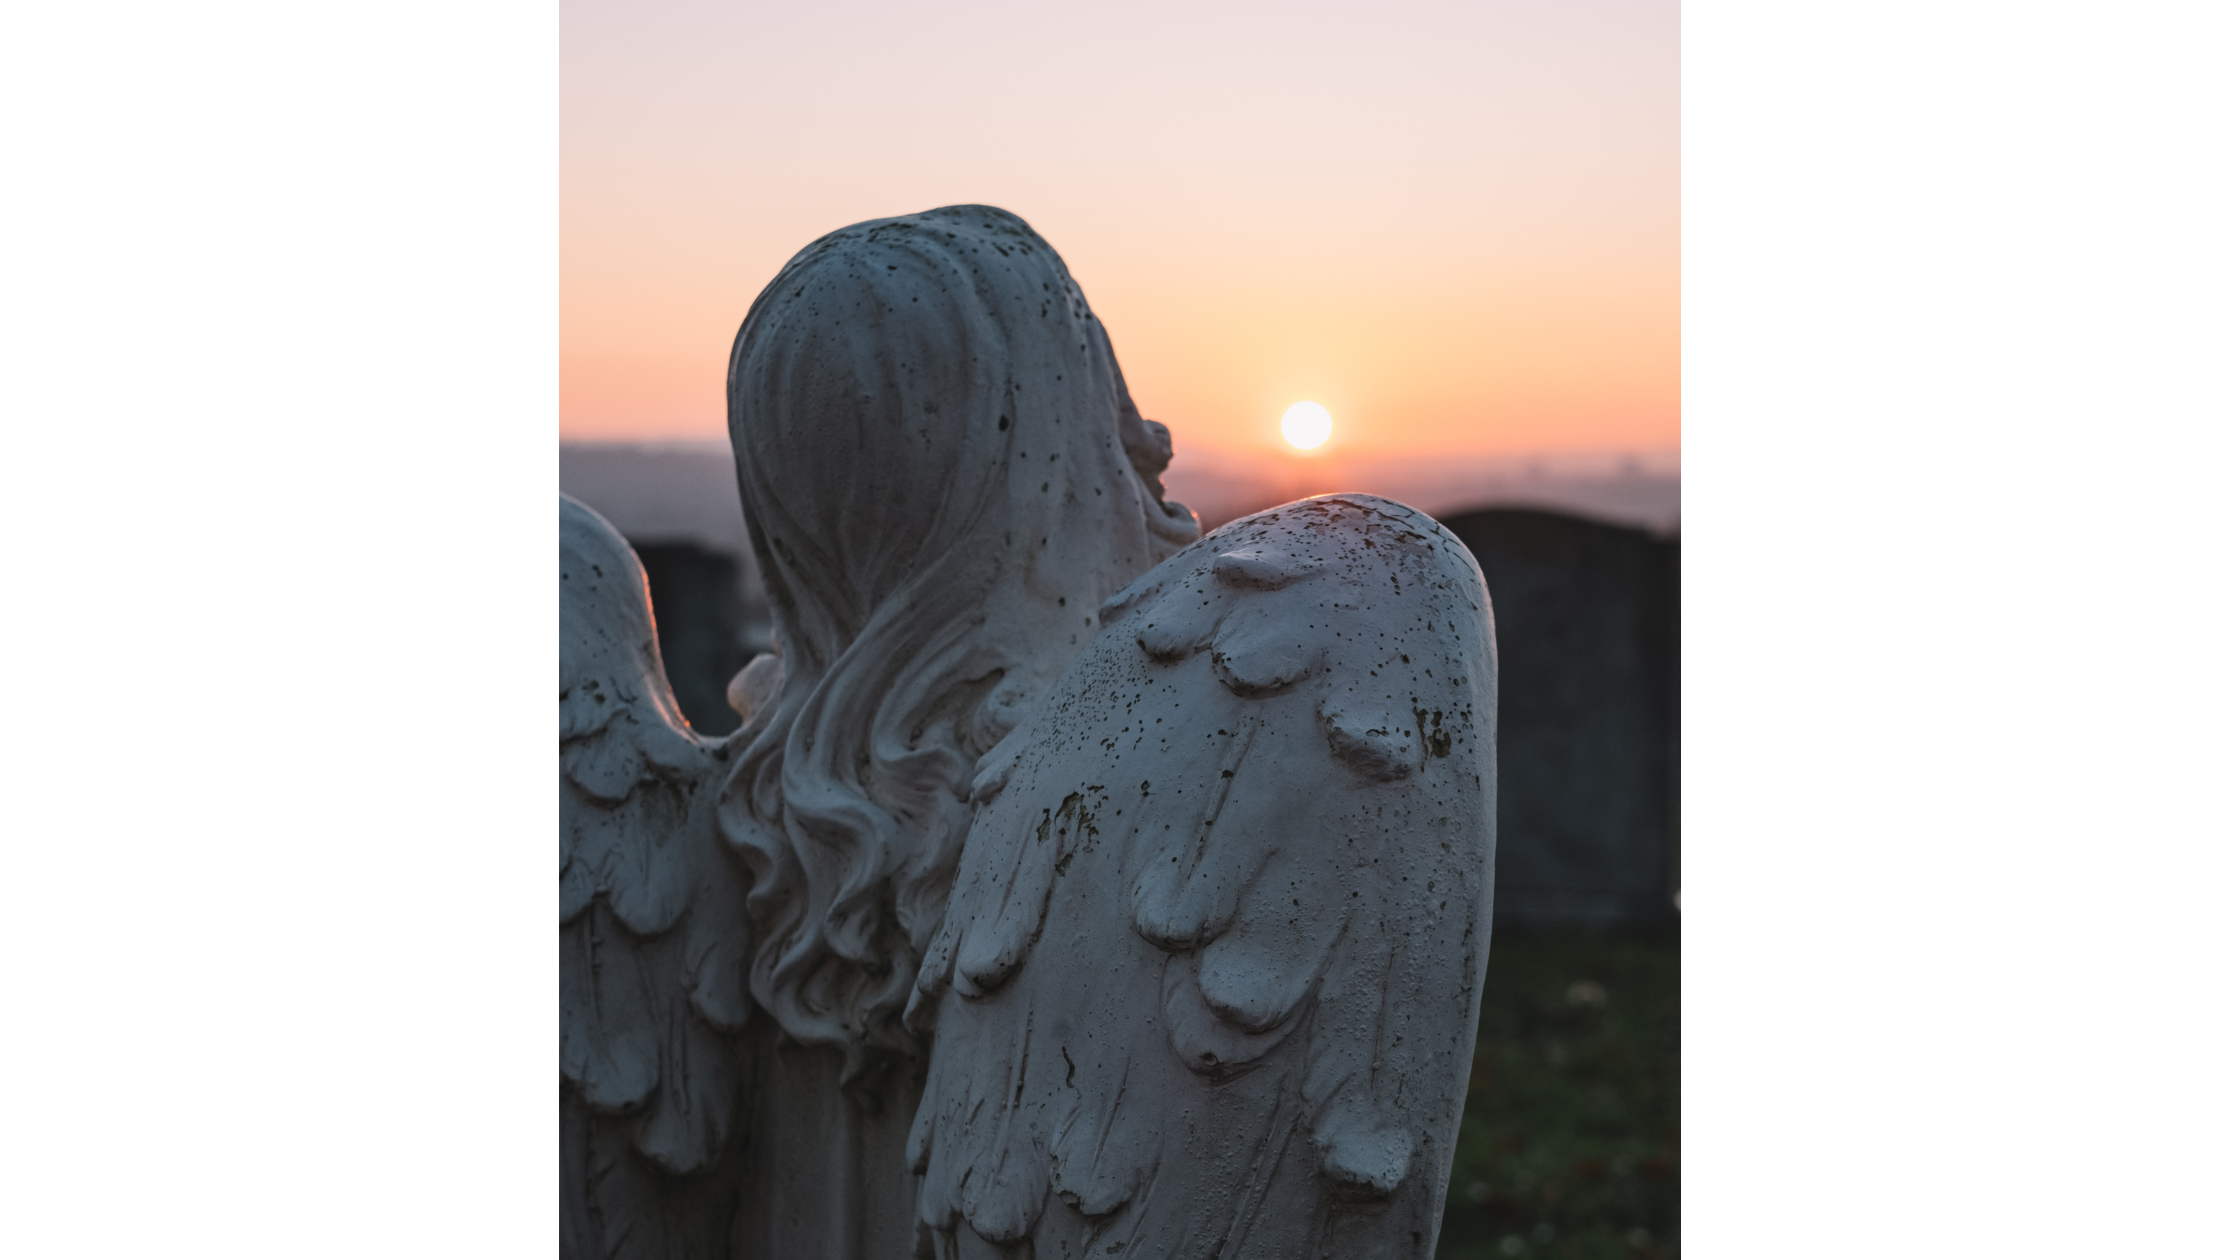 Hope in ugly places - a stone angel